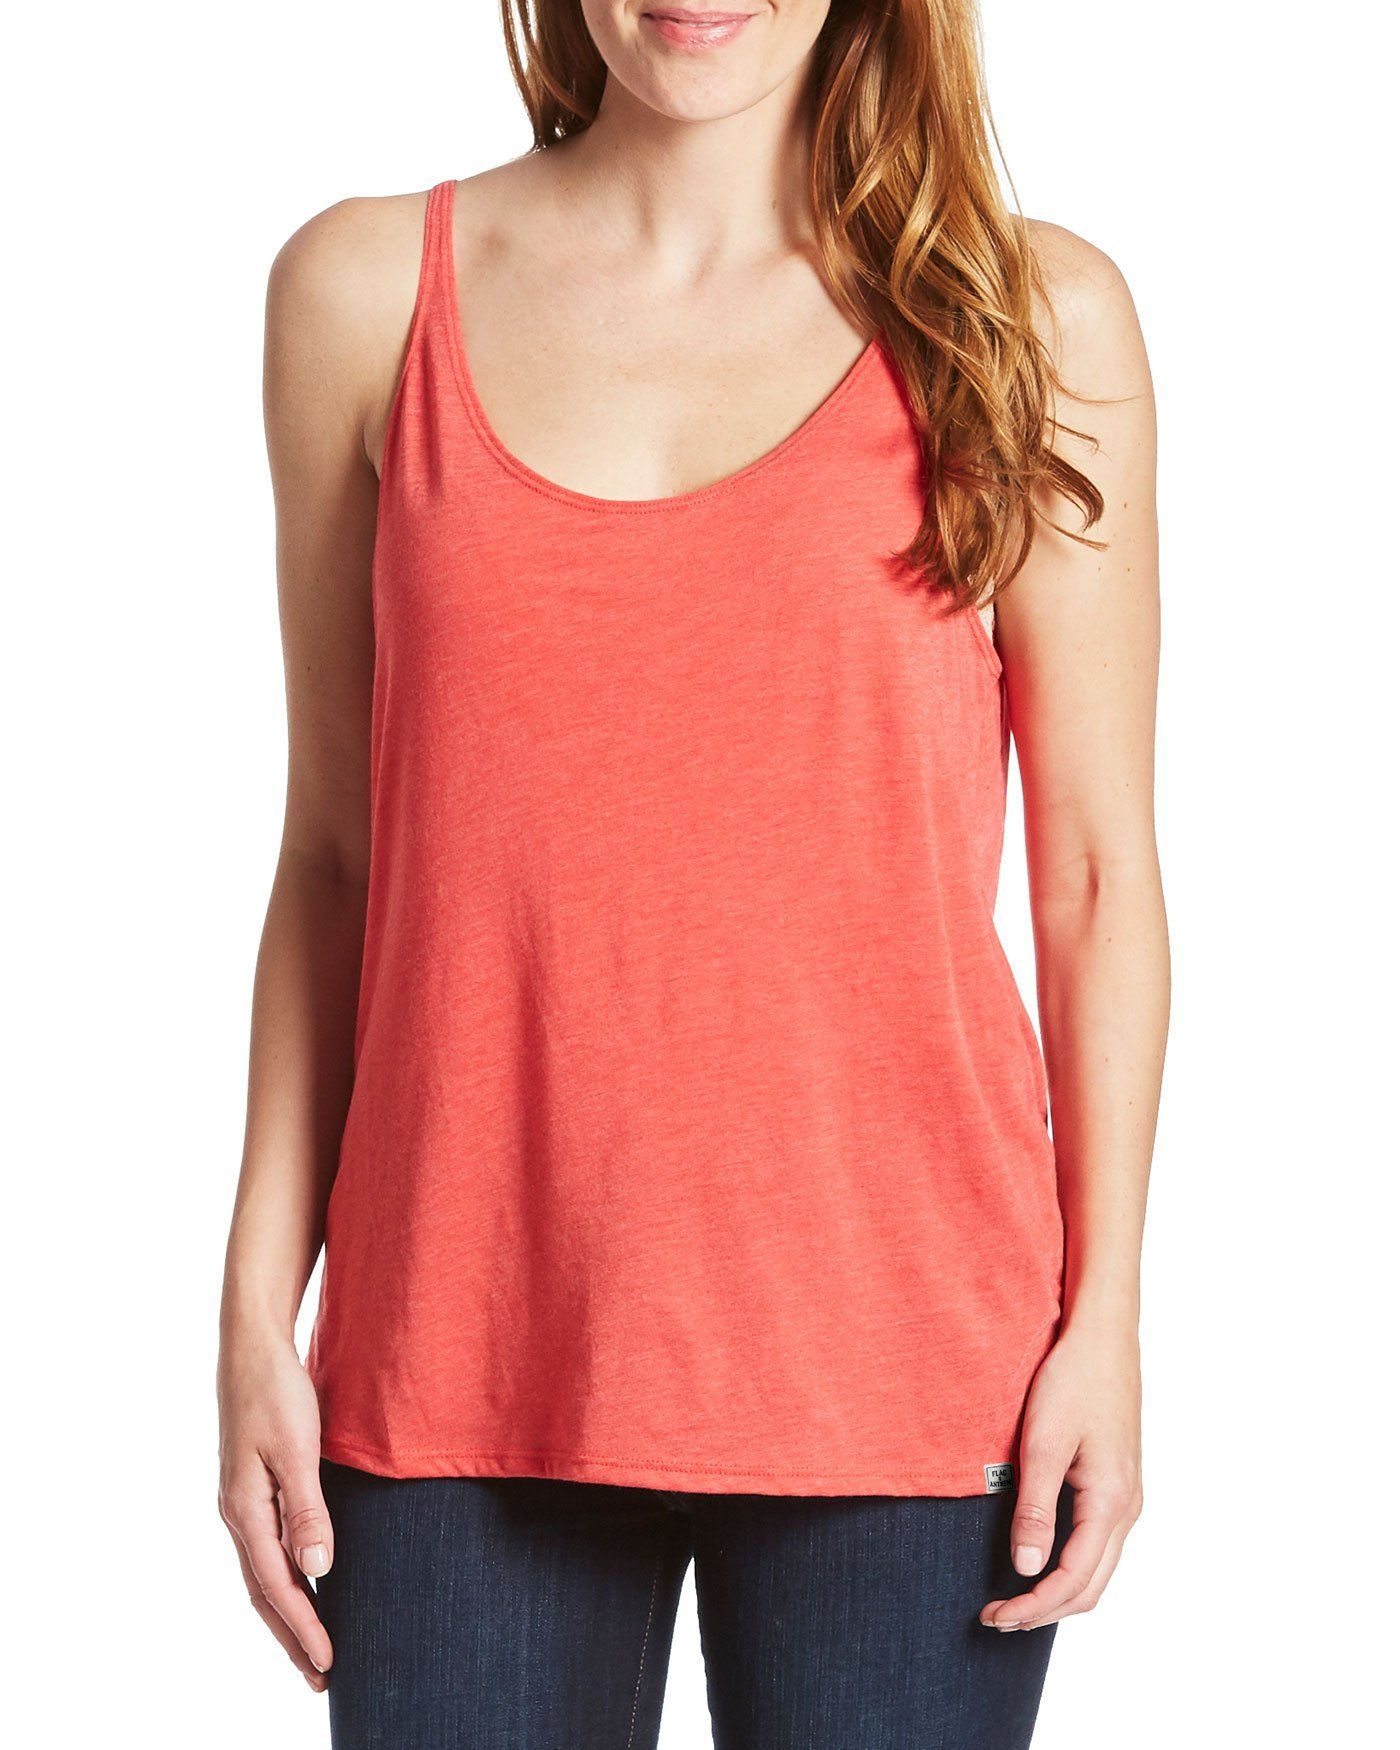 Women's Tanks - HARLEIGH WOMENS TRIBLEND TANK - RED (FINAL SALE)